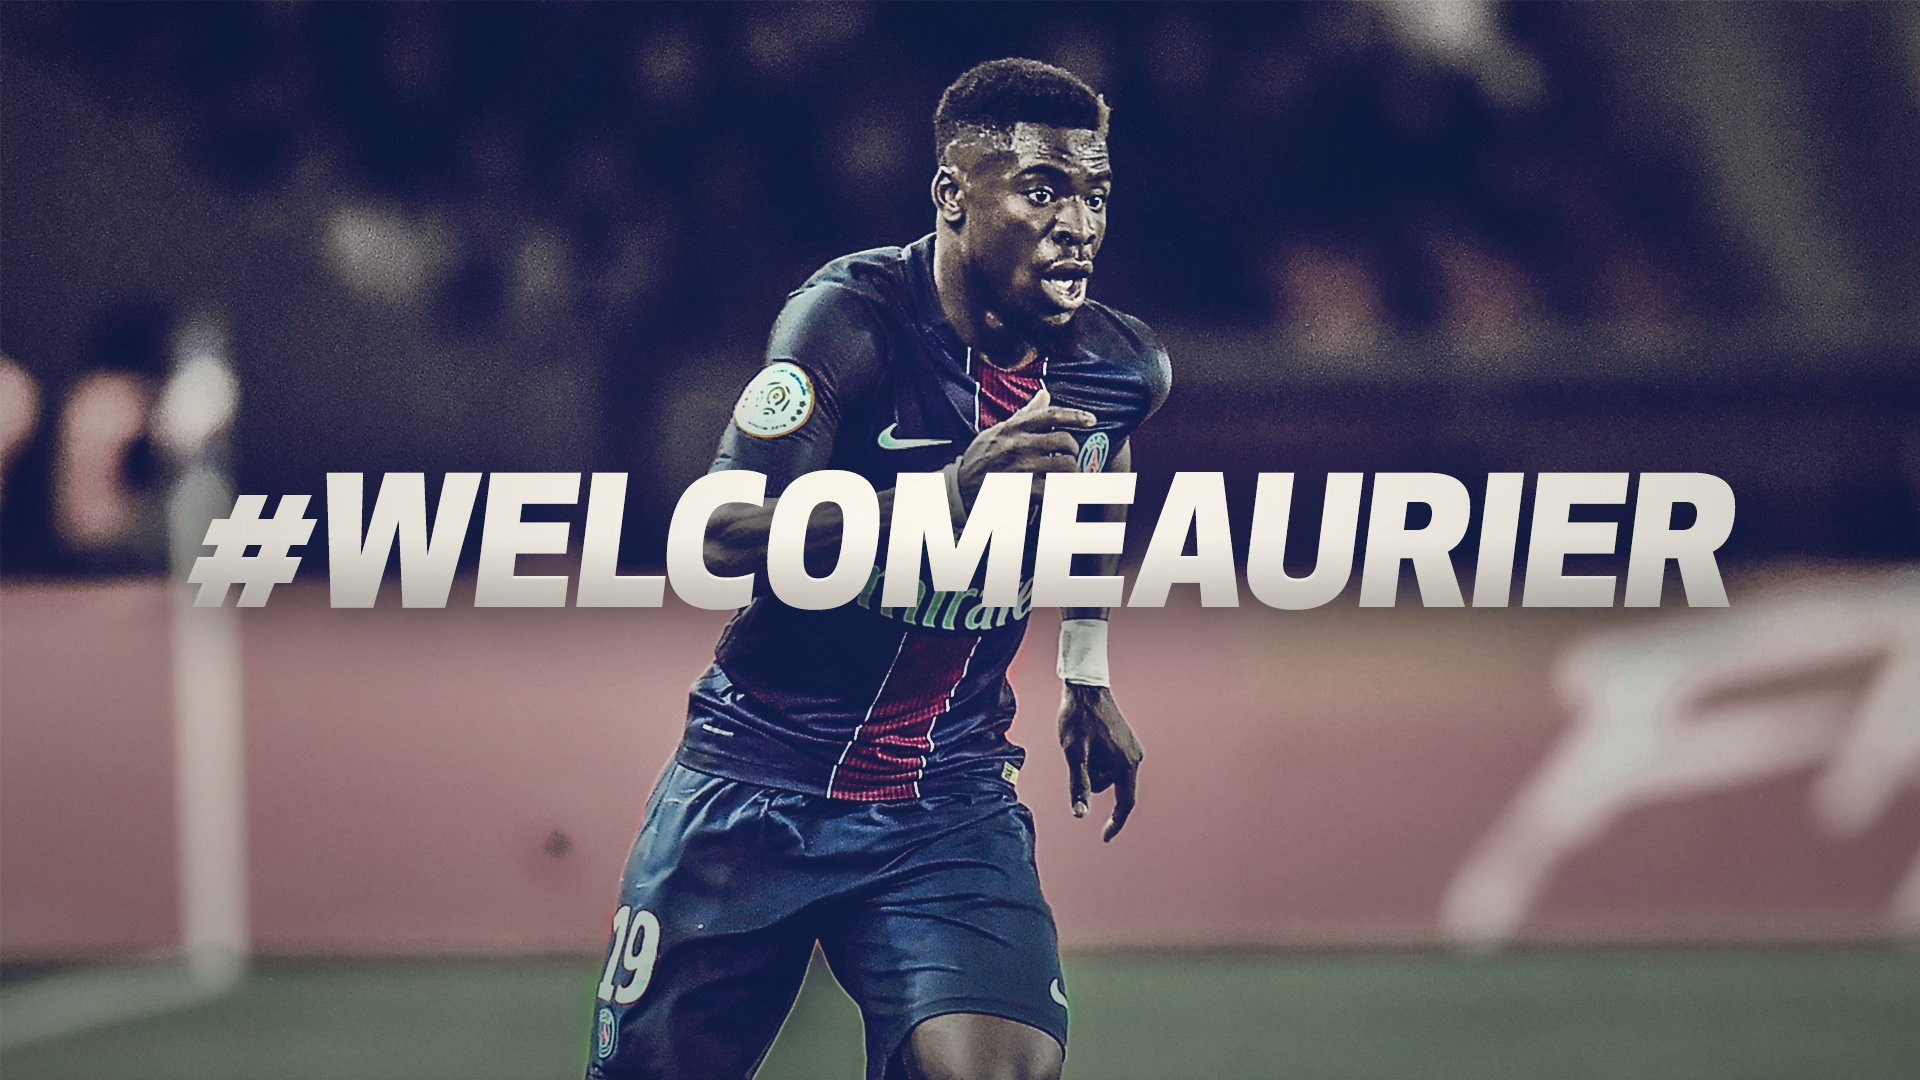 Tottenham Hotspur announce the signing of Serge Aurier from PSG